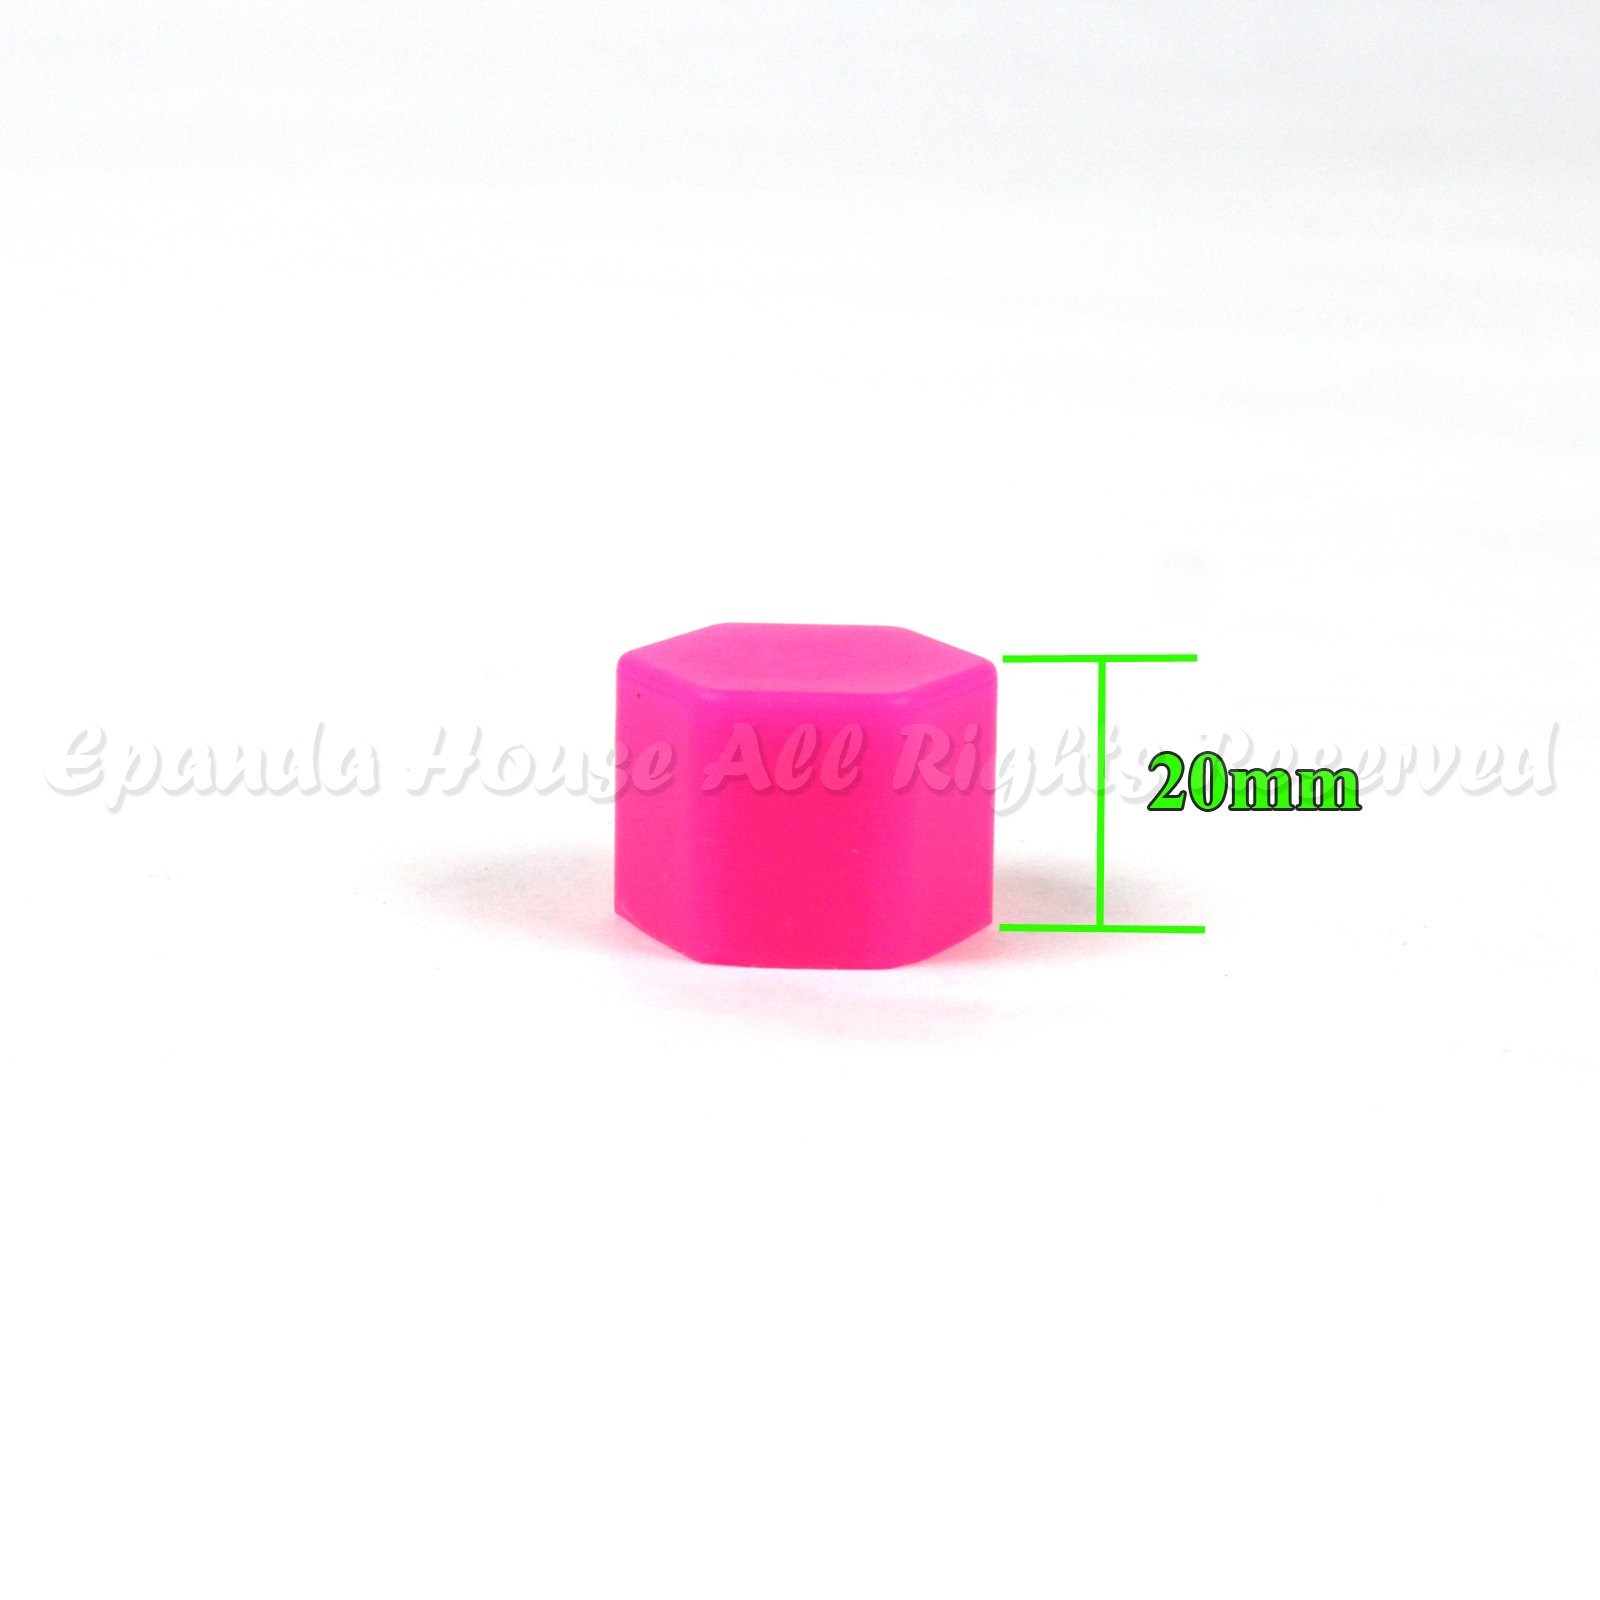 21mm 20X Glow In The Dark Blacklight Wheel Rim Lug Nuts Covers Cars/Bikes Pink by EpandaHouse (Image #4)